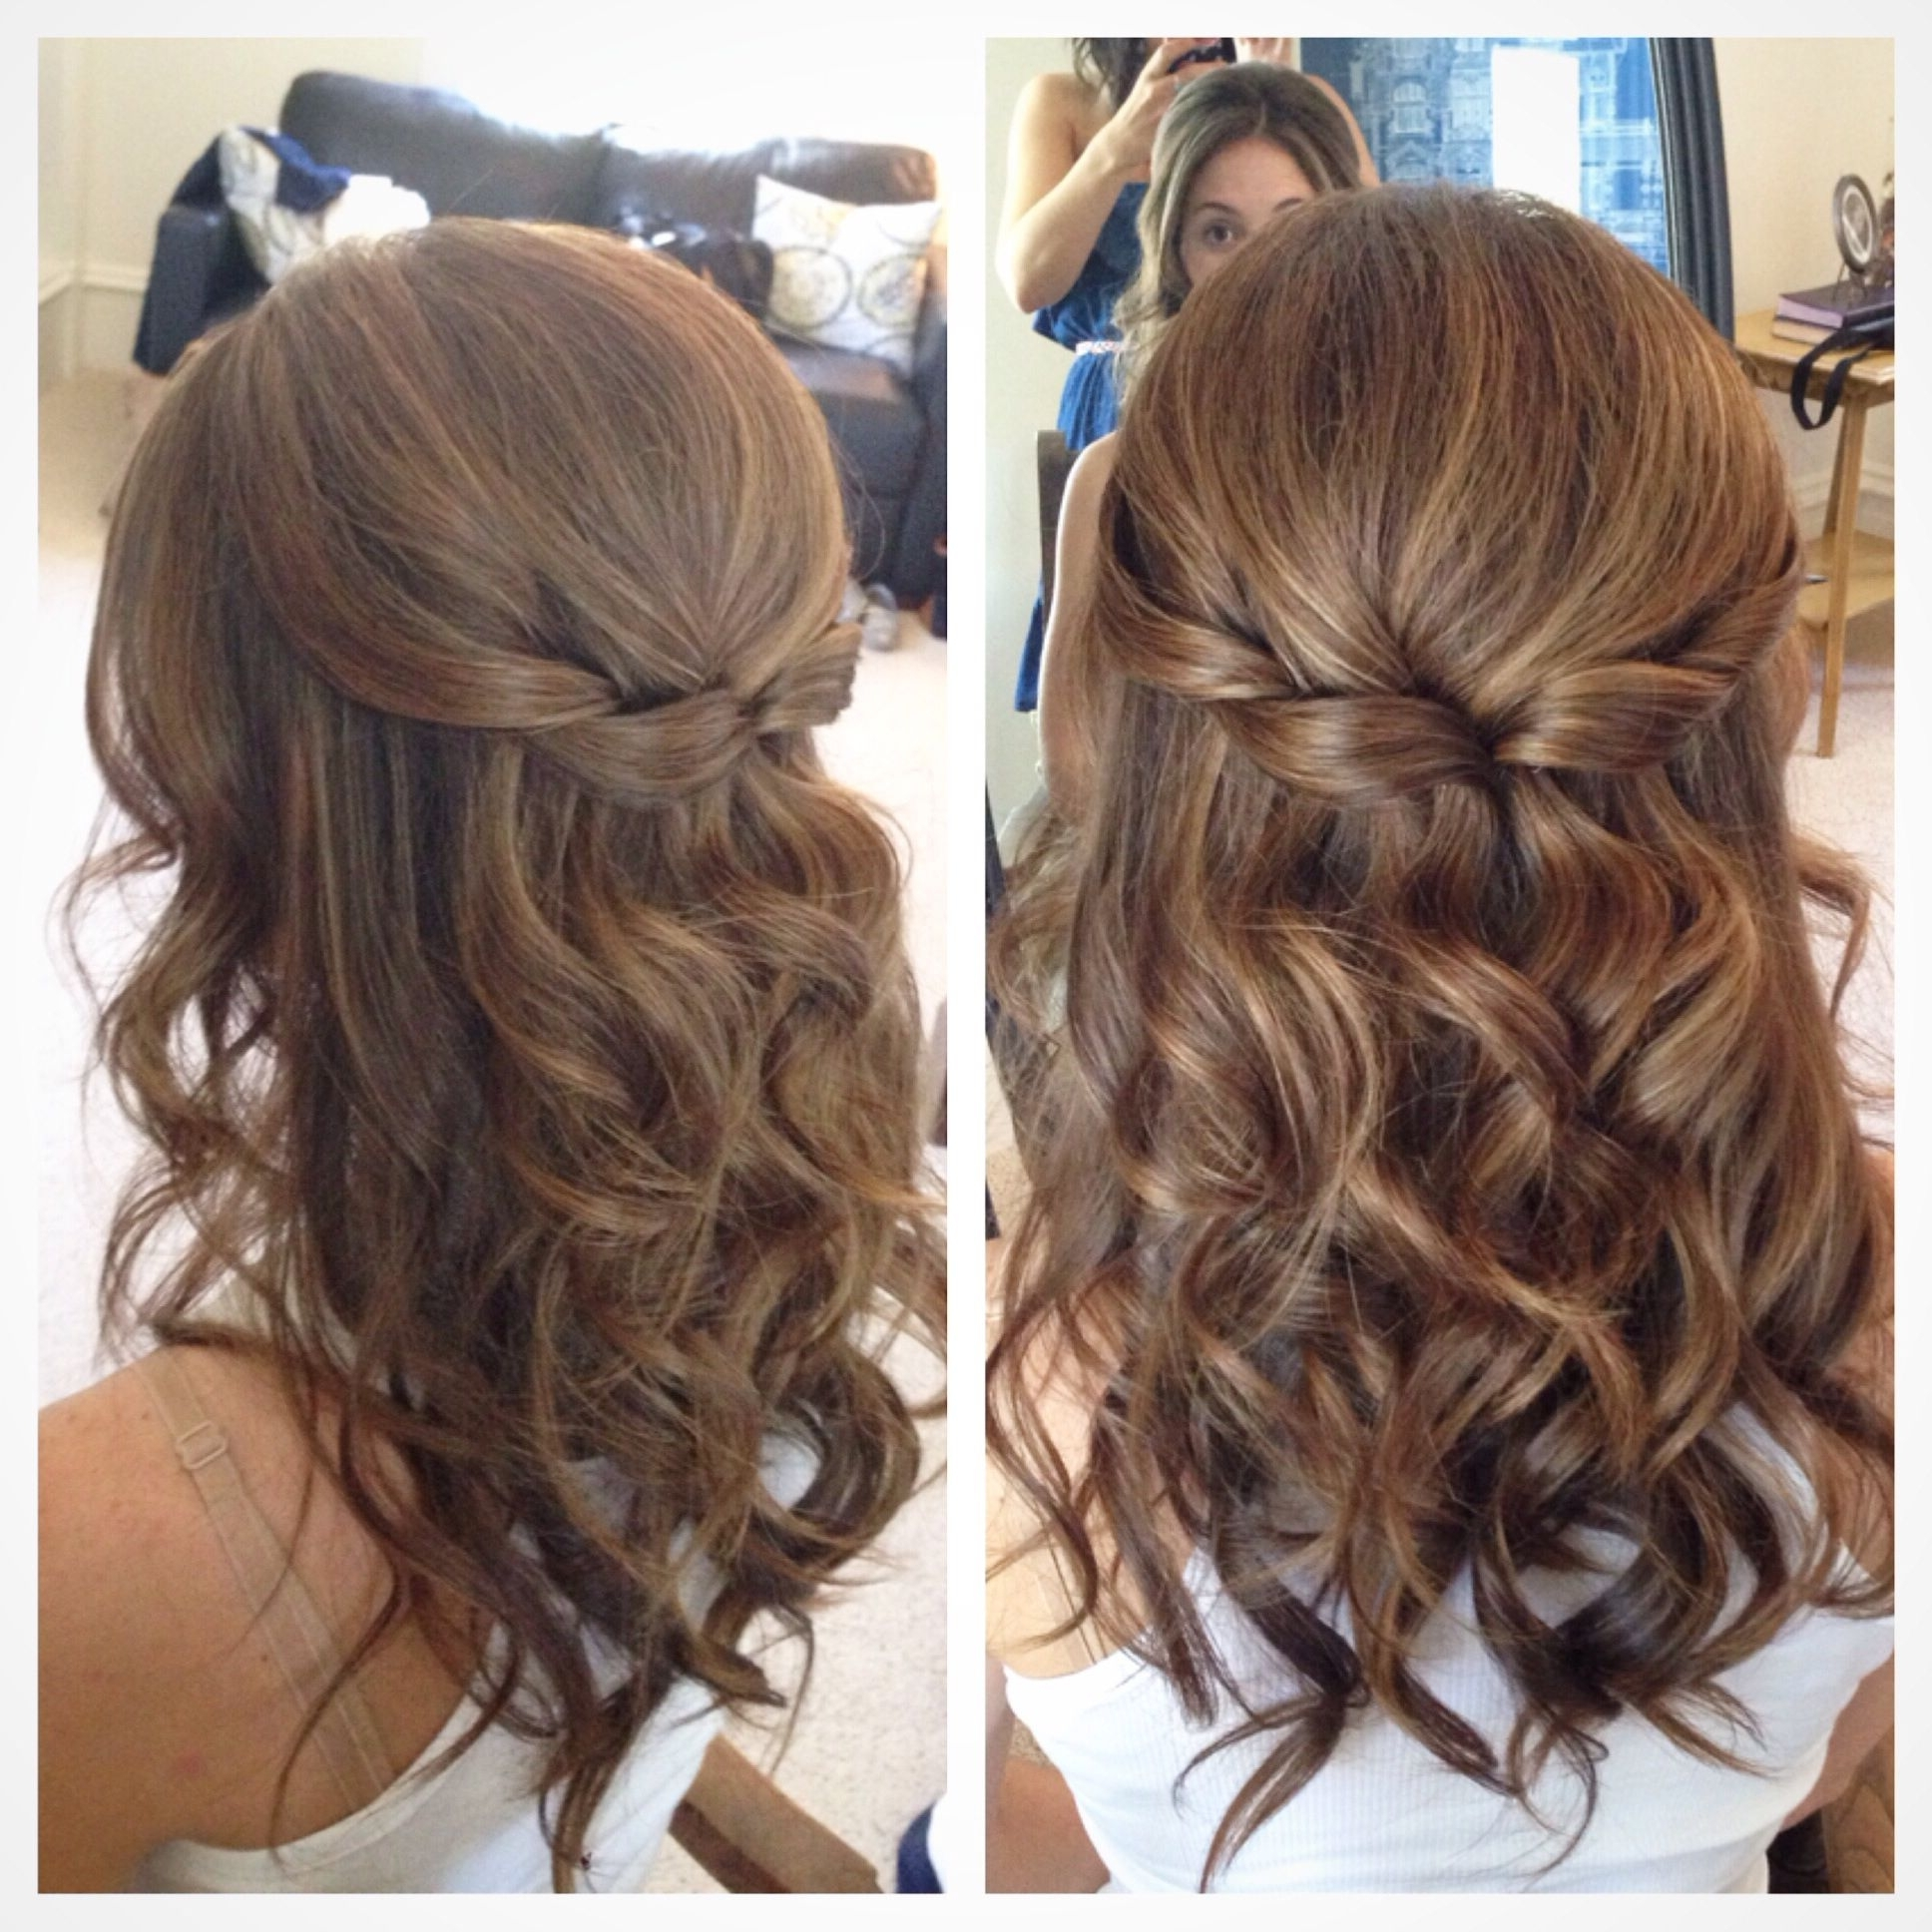 Half Up Half Down Hair, Wedding Hair, Pretty Hair But With Softer Throughout Curly Half Updo Hairstyles (View 9 of 15)